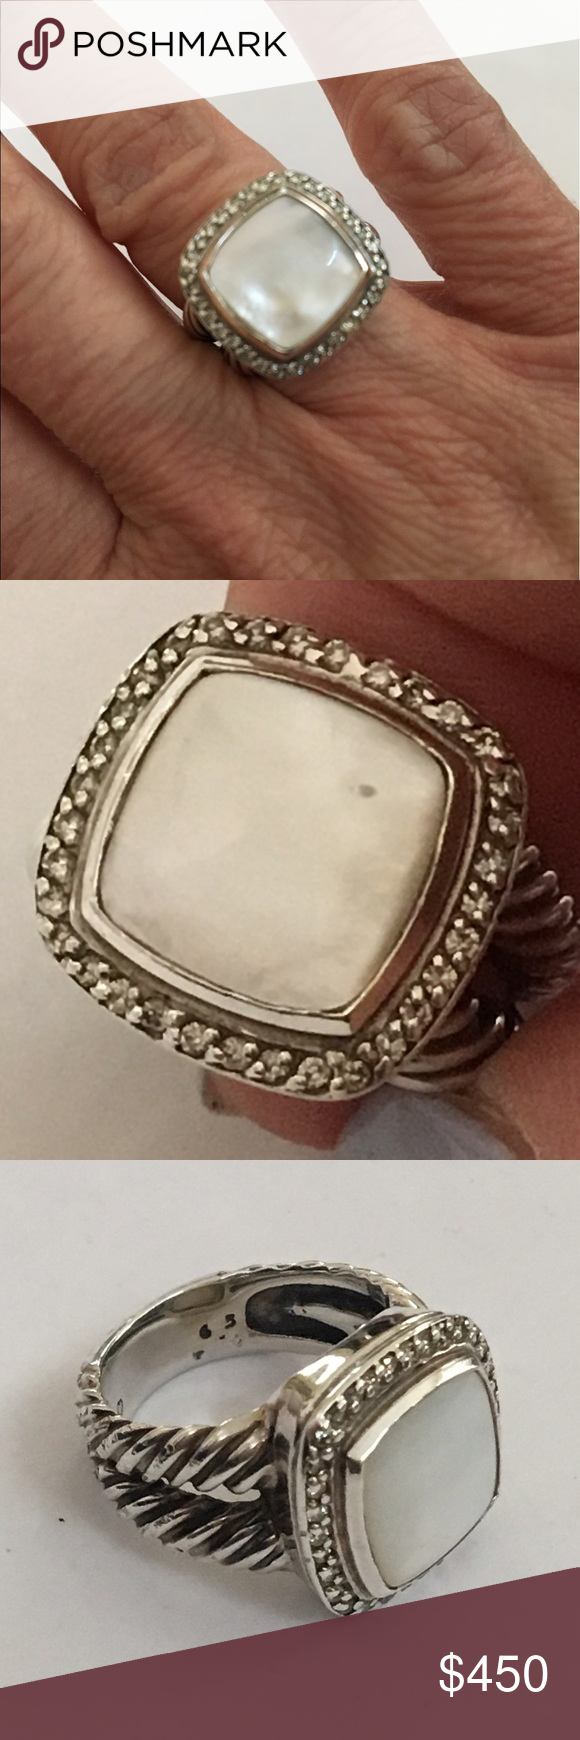 0013a0d1abb7d David Yurman 11mm Mother of Pearl Albion Ring 6.5 This is a preowned ...